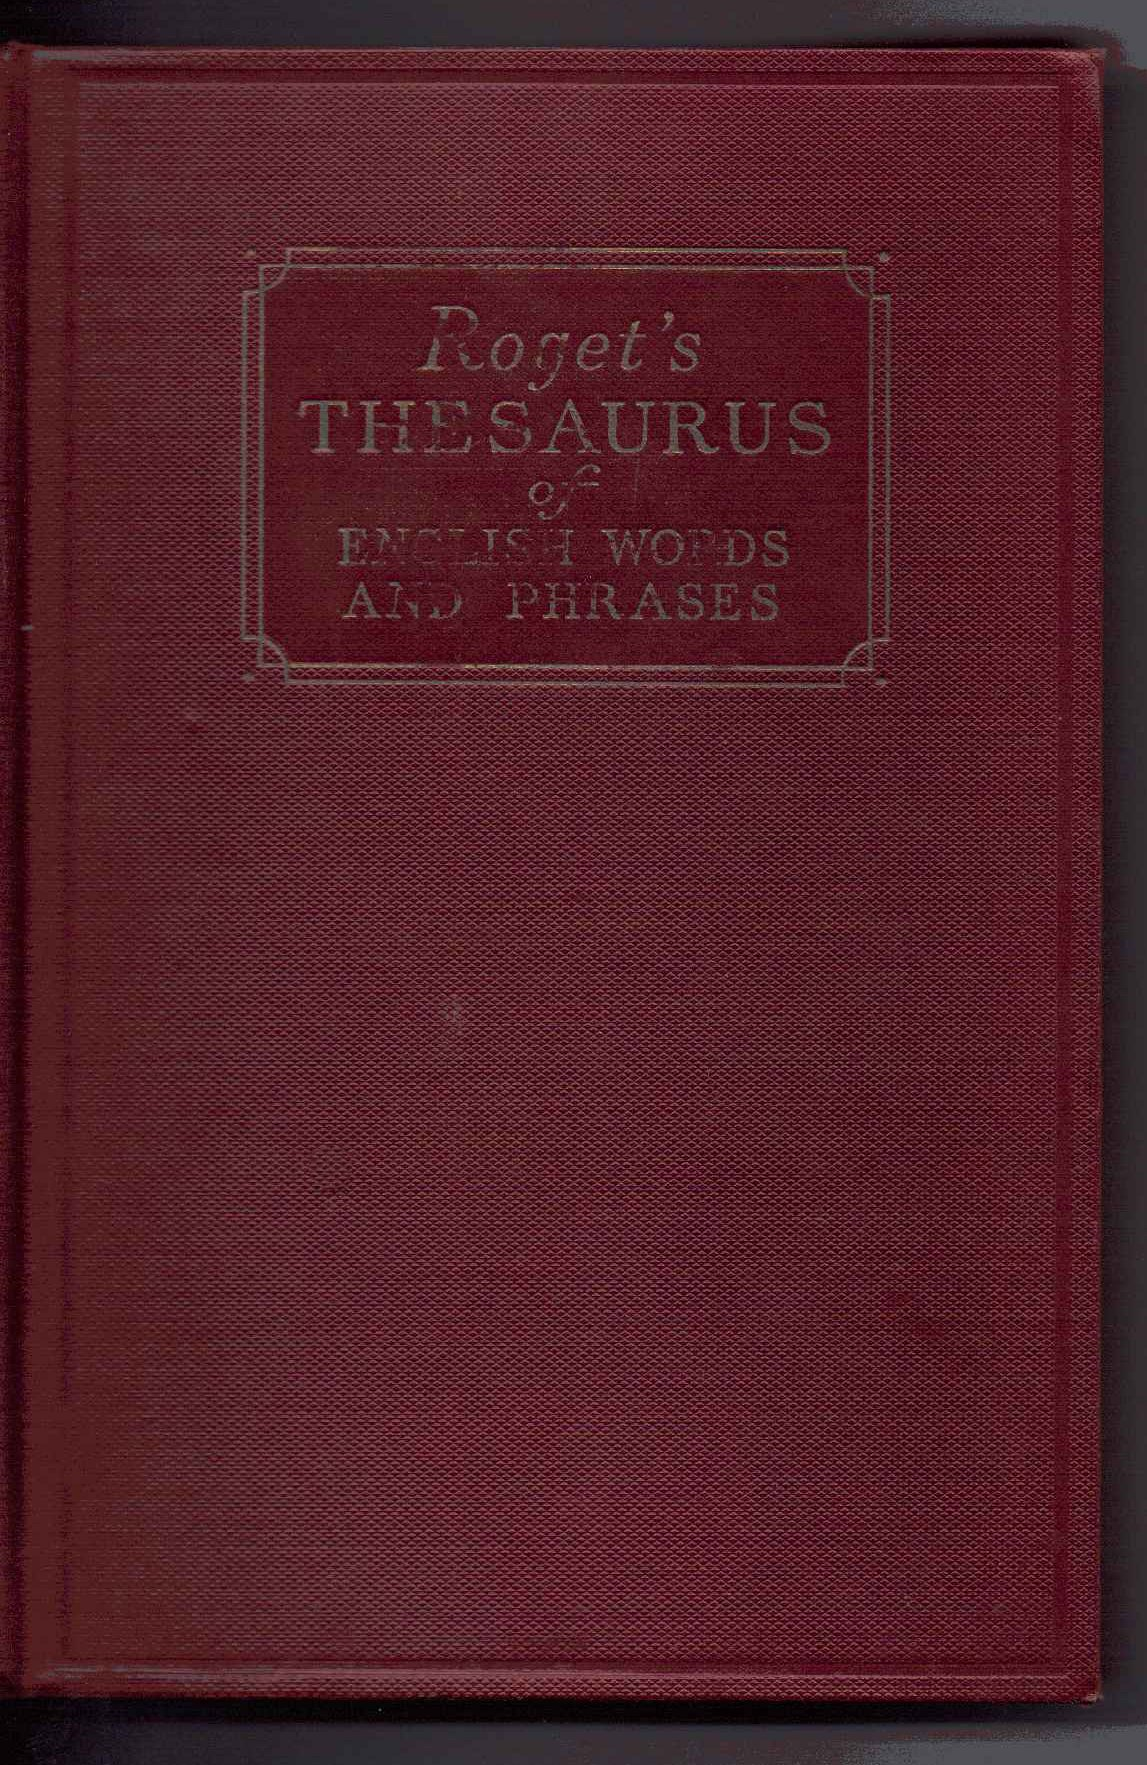 Roget's Thesaurus of English Words and Phrases: Peter Mark Roget:  Amazon.com: Books